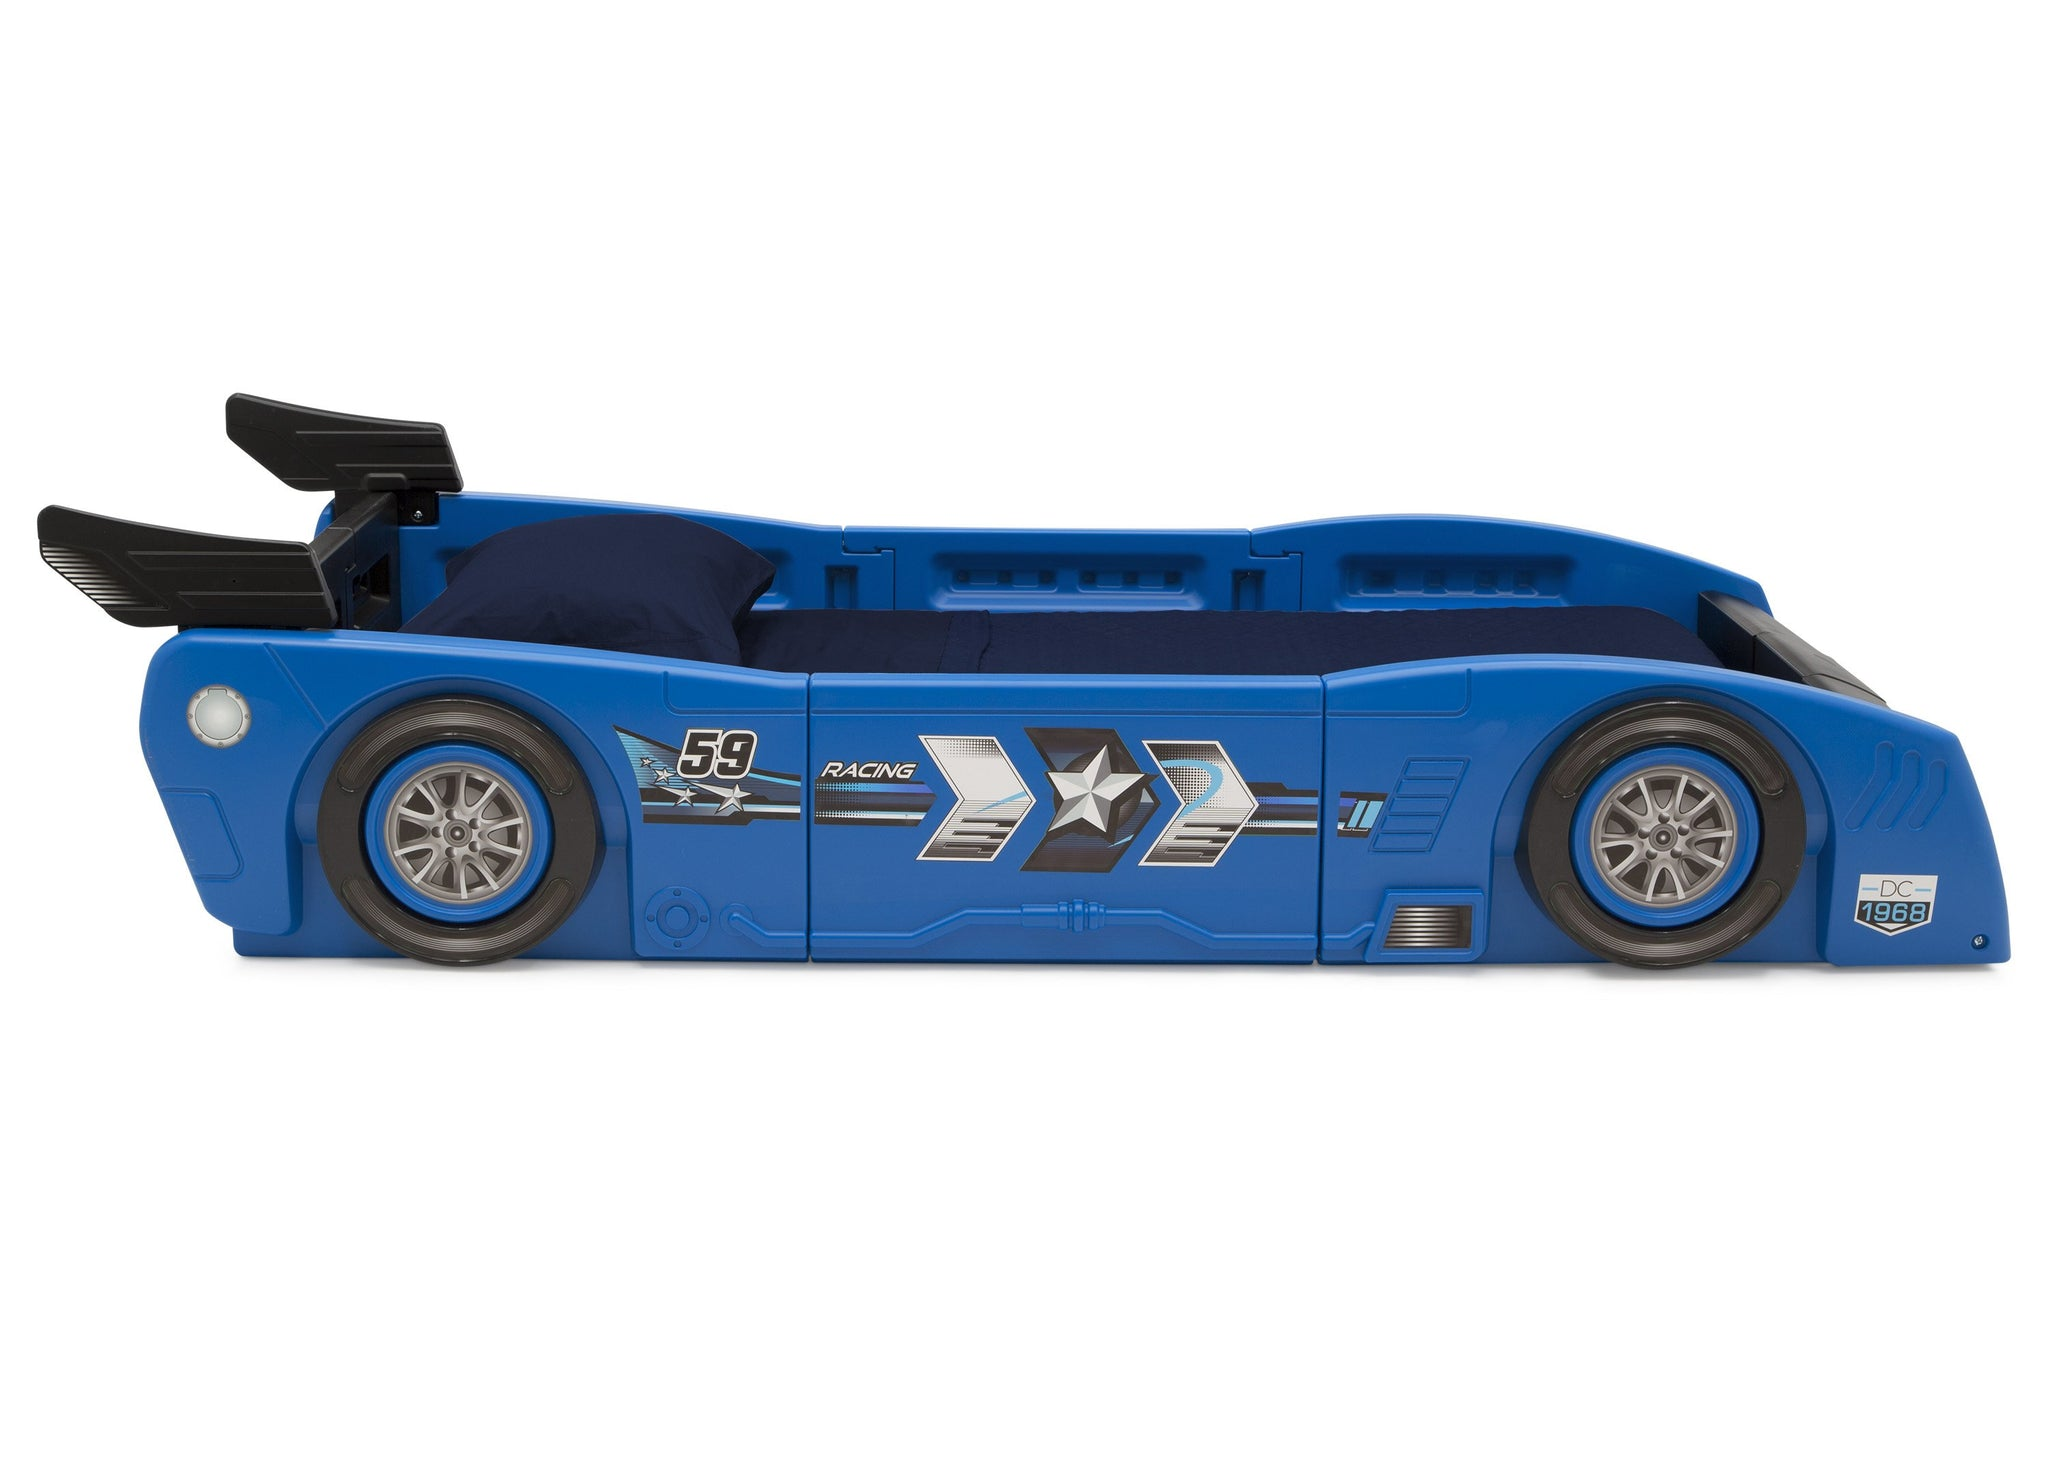 Delta Children Blue & Black (485) Grand Prix Race Car Toddler-to-Twin Bed, Twin Side Silo View